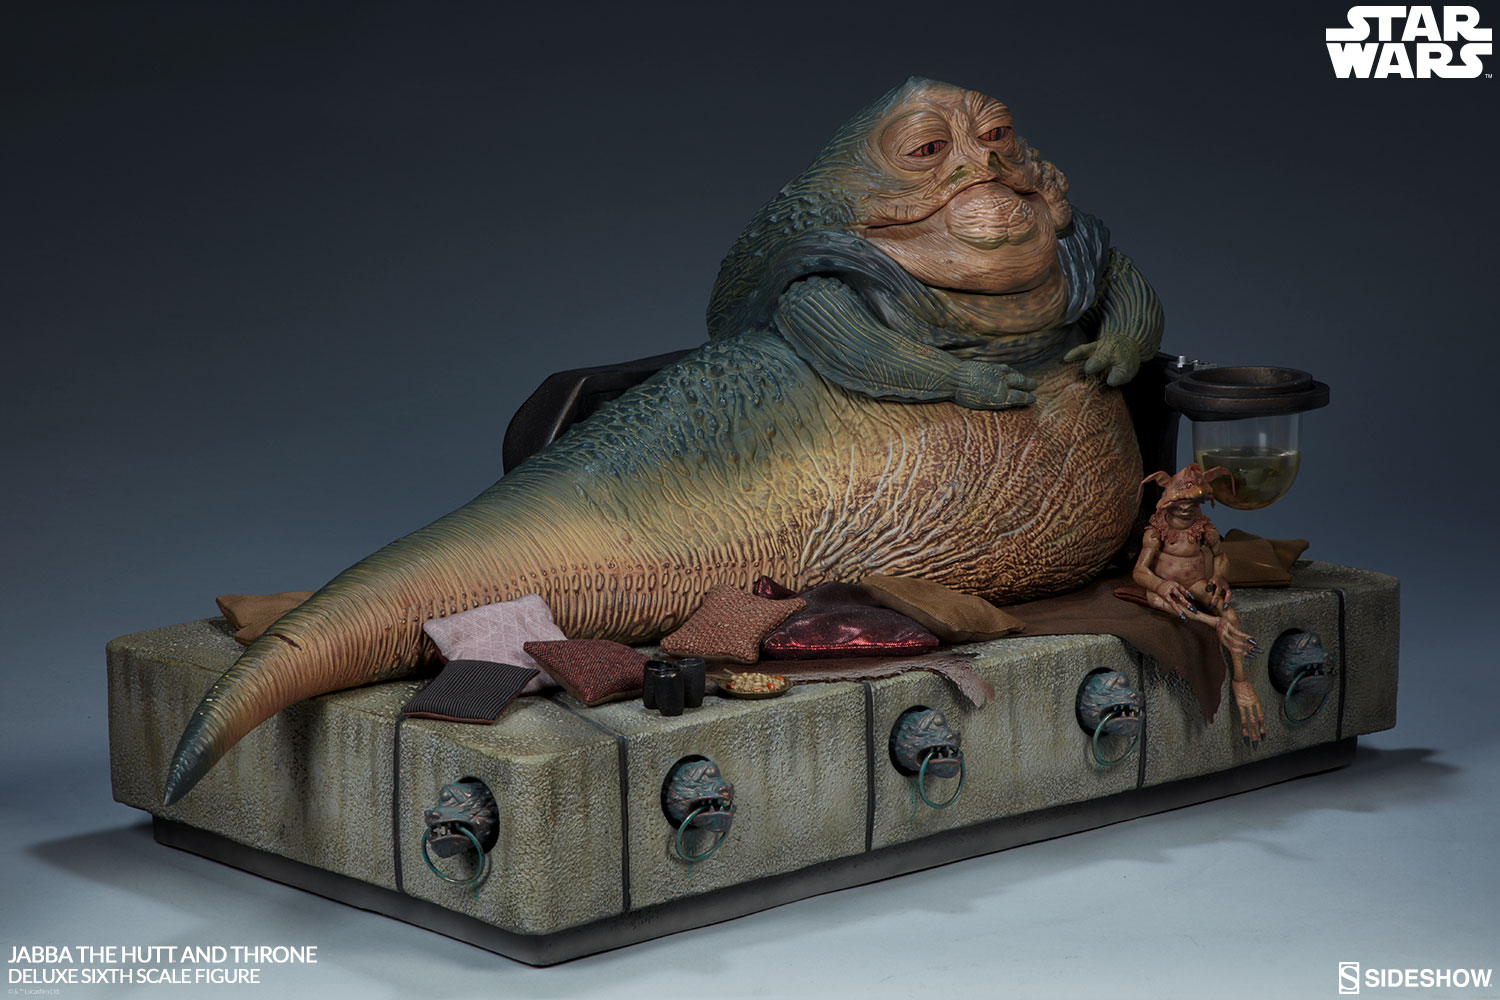 Jabba the Hutt and Throne Deluxe Star Wars Sixth Scale Figure by Sideshow